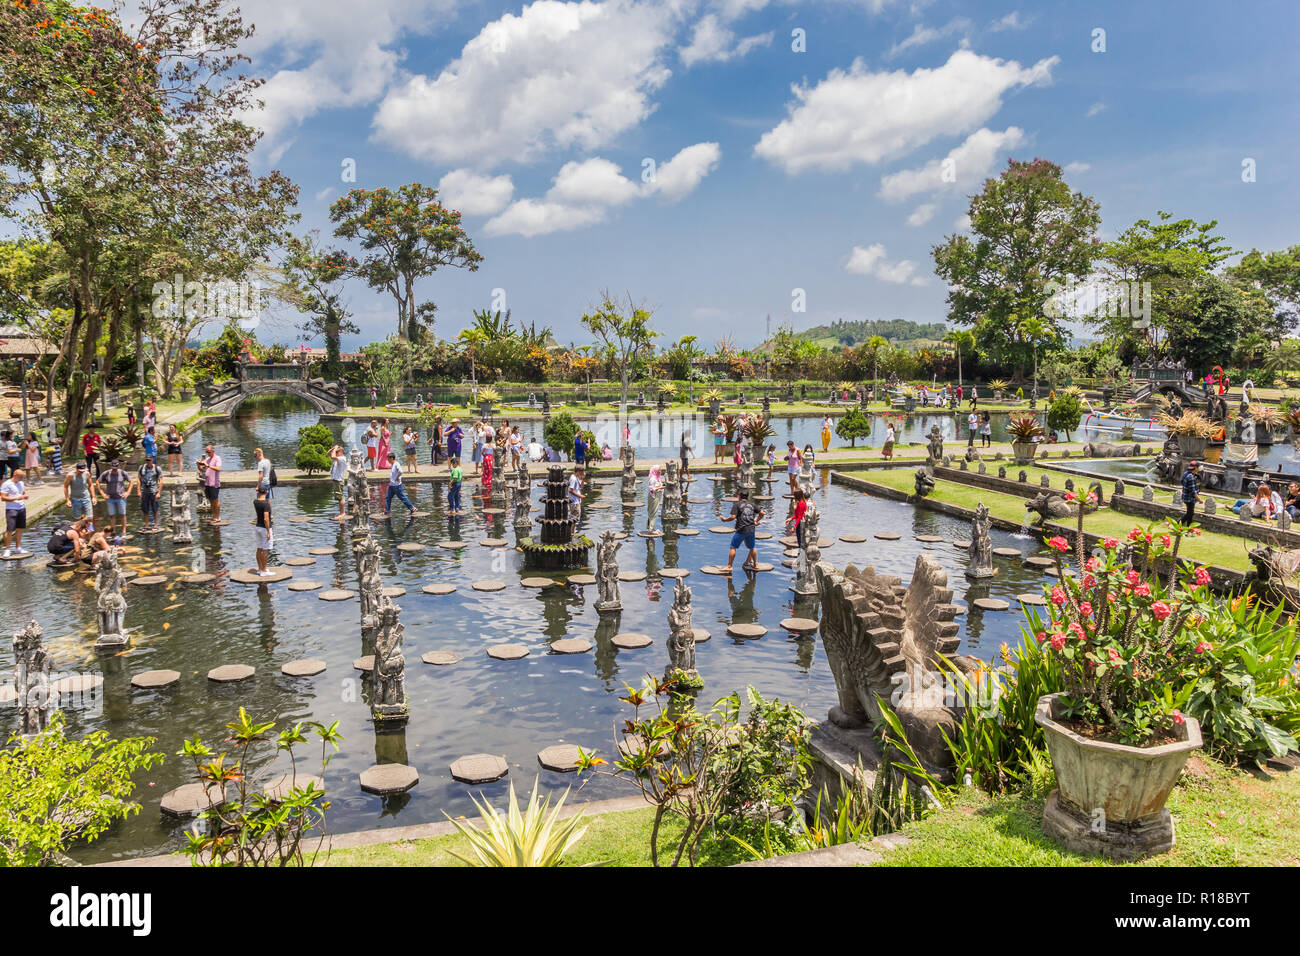 Tirta Gangga Royal Water Garden: Tirtagangga Royal Water Palace Stock Photos & Tirtagangga